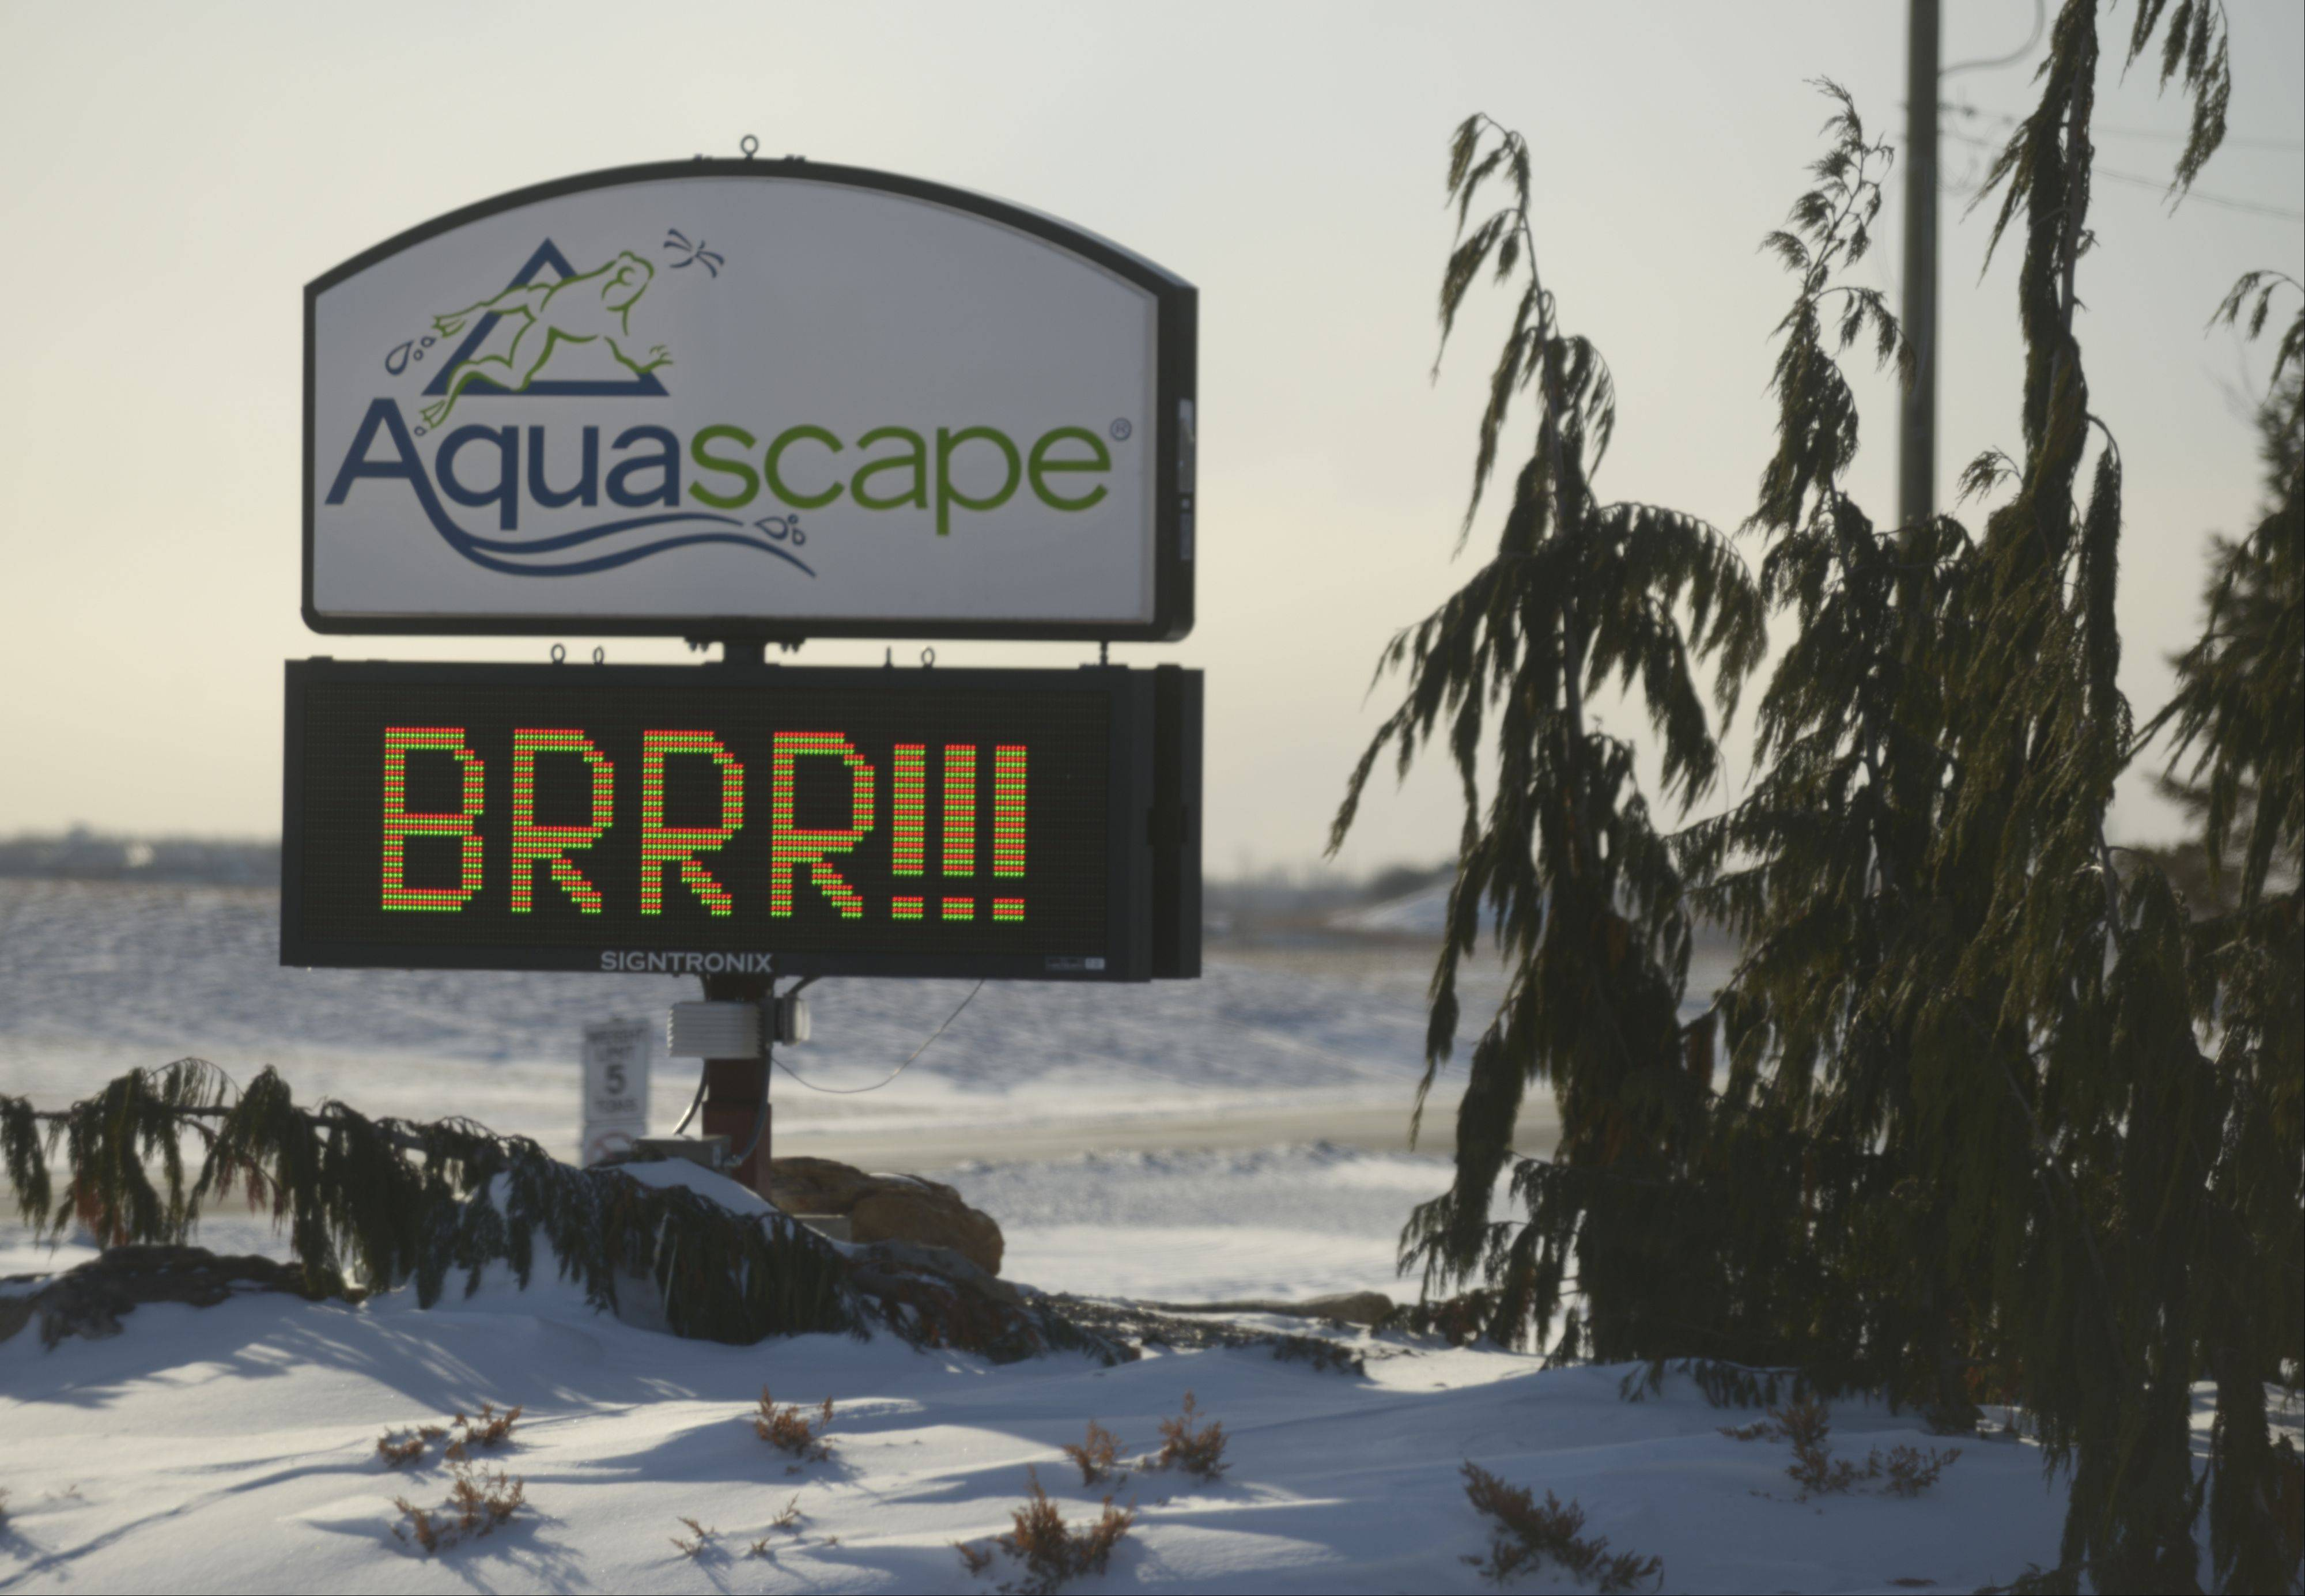 Nearly everyone will agree with what Aquascape in St. Charles has to say on its sign.